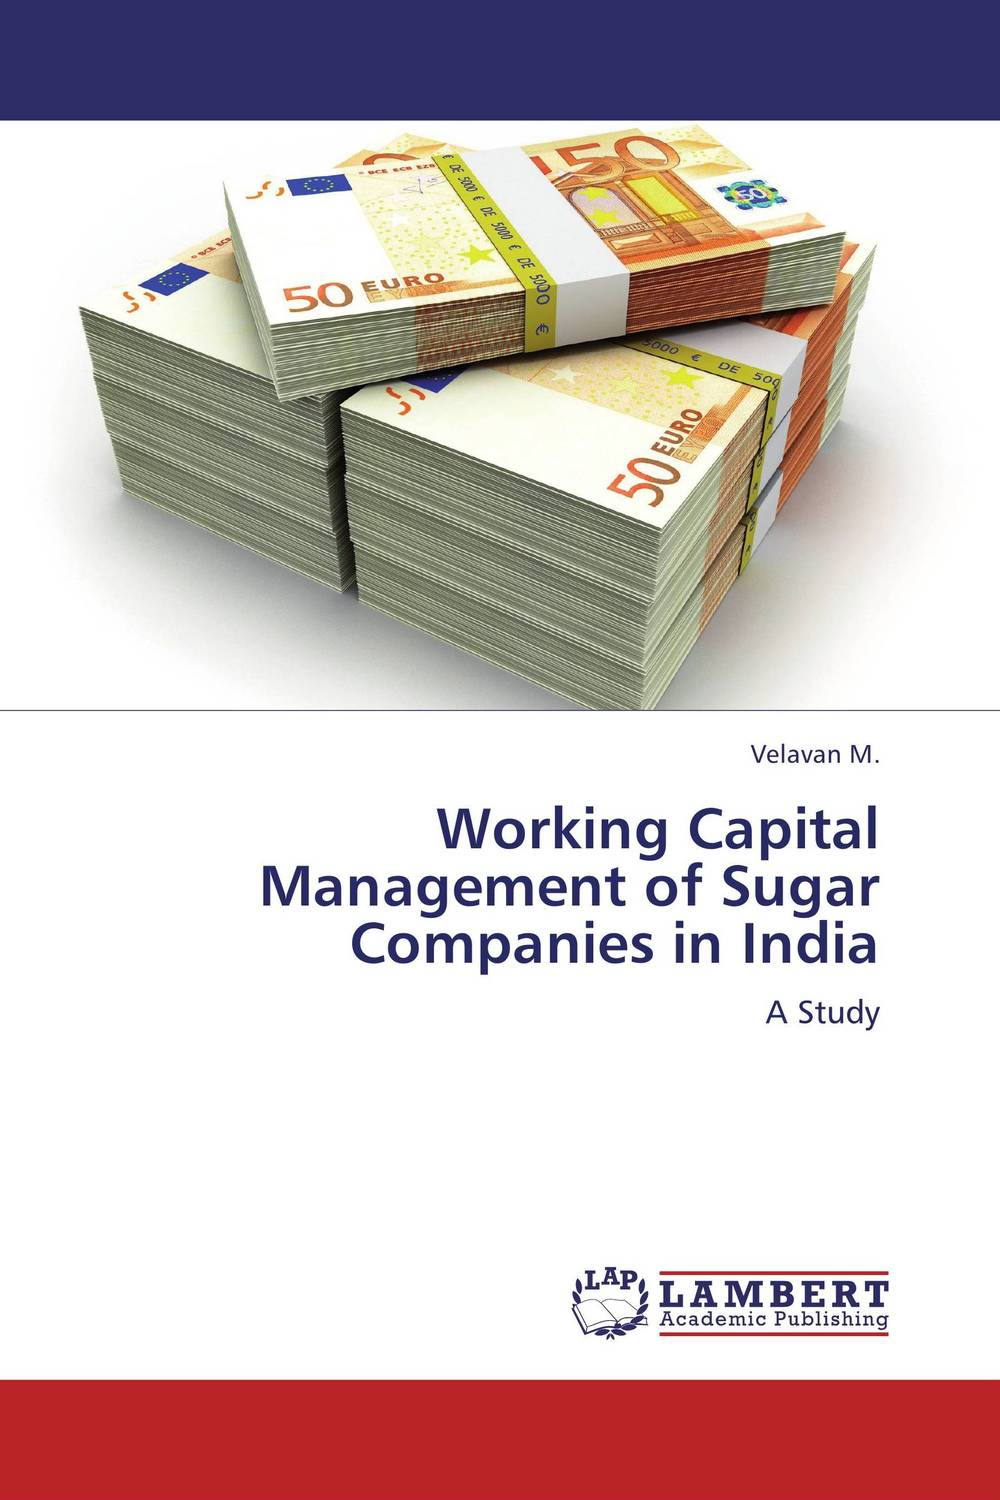 Working Capital Management of Sugar Companies in India not working